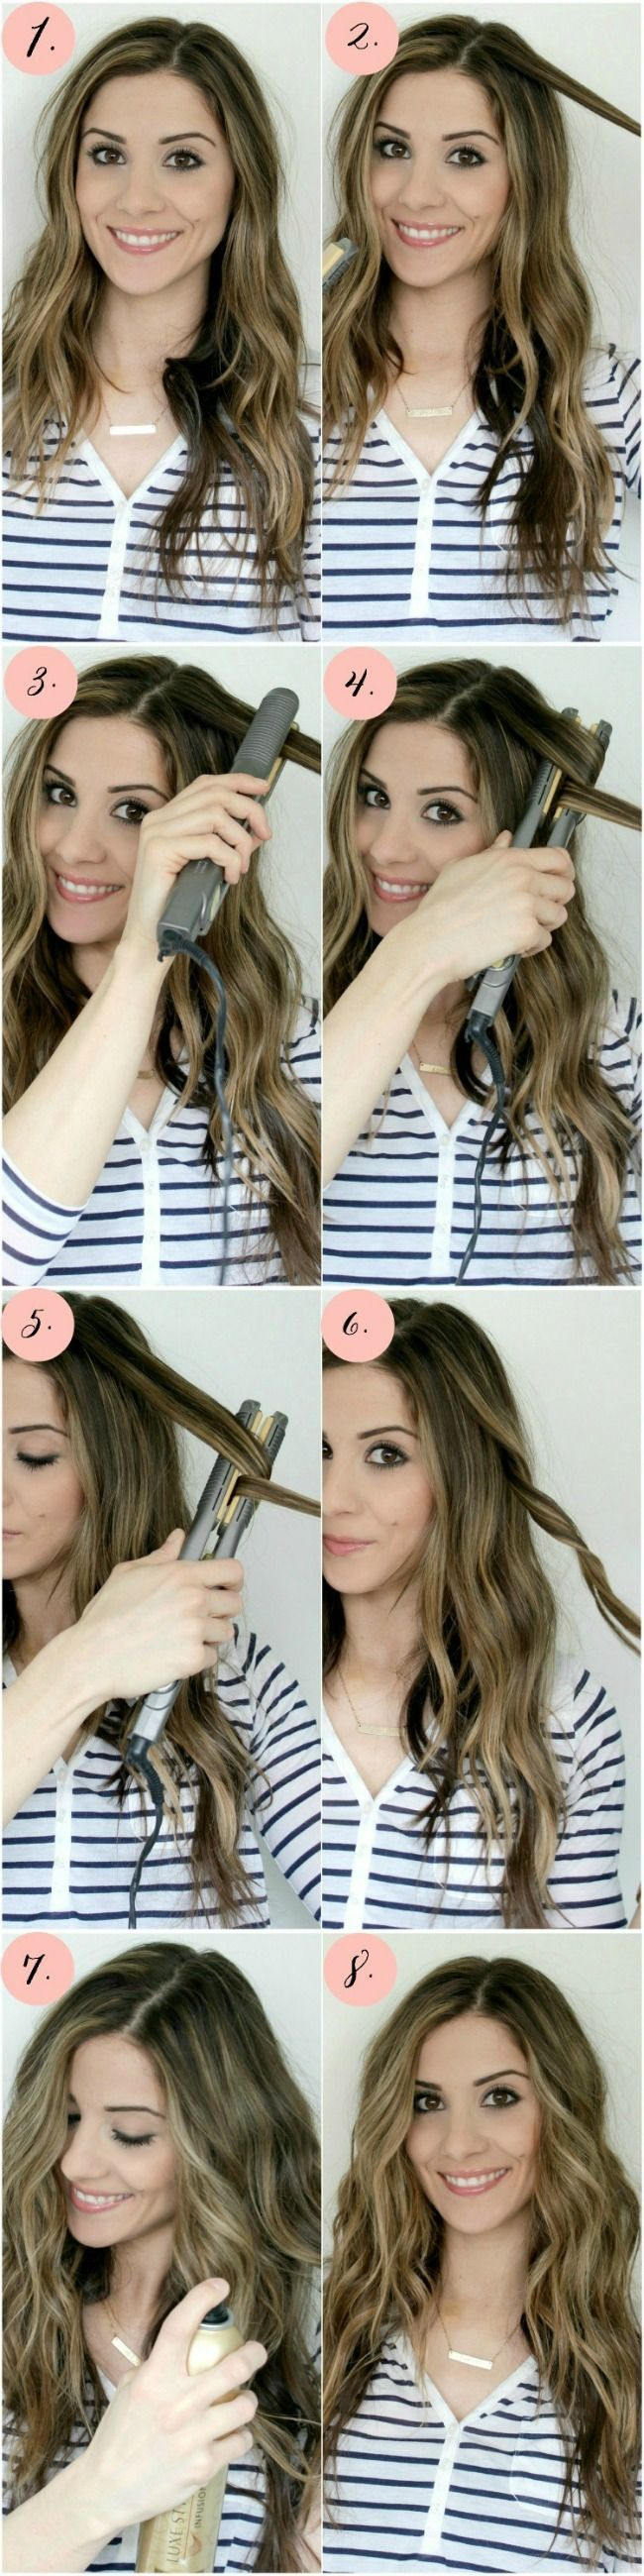 Most people think that flat irons only achieve sleek straight hair, but you can do so much more with them. Using them to curl your hair is the trendy thing to do. And, chances are you most likely already have a flat iron at home. For the perfect curls, wavy hair or frizz free hair here are The 11 Best Trendy Flat Iron Tricks for Hair.